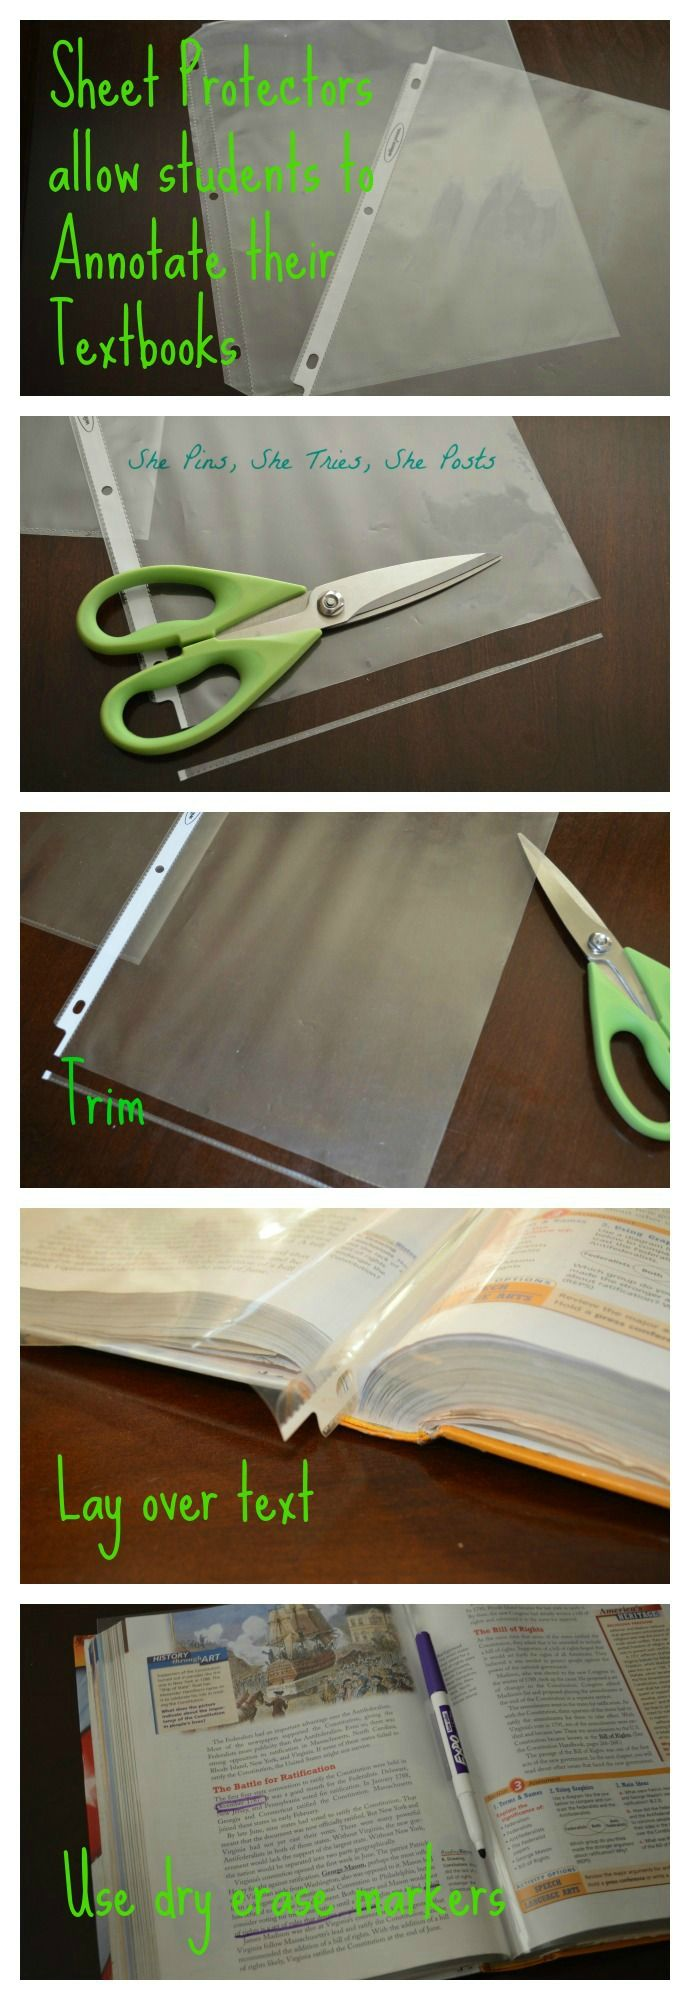 THIS IS GENIUS! Use great critical reading strategies without copying the textbook! Students can keep a sheet protector in their notebook/binder to have ready in any class! Simply trim the side and bottom edge, leave three hole punched edge. Write with dry-erase markers, then wipe clean for the next 2-page spread